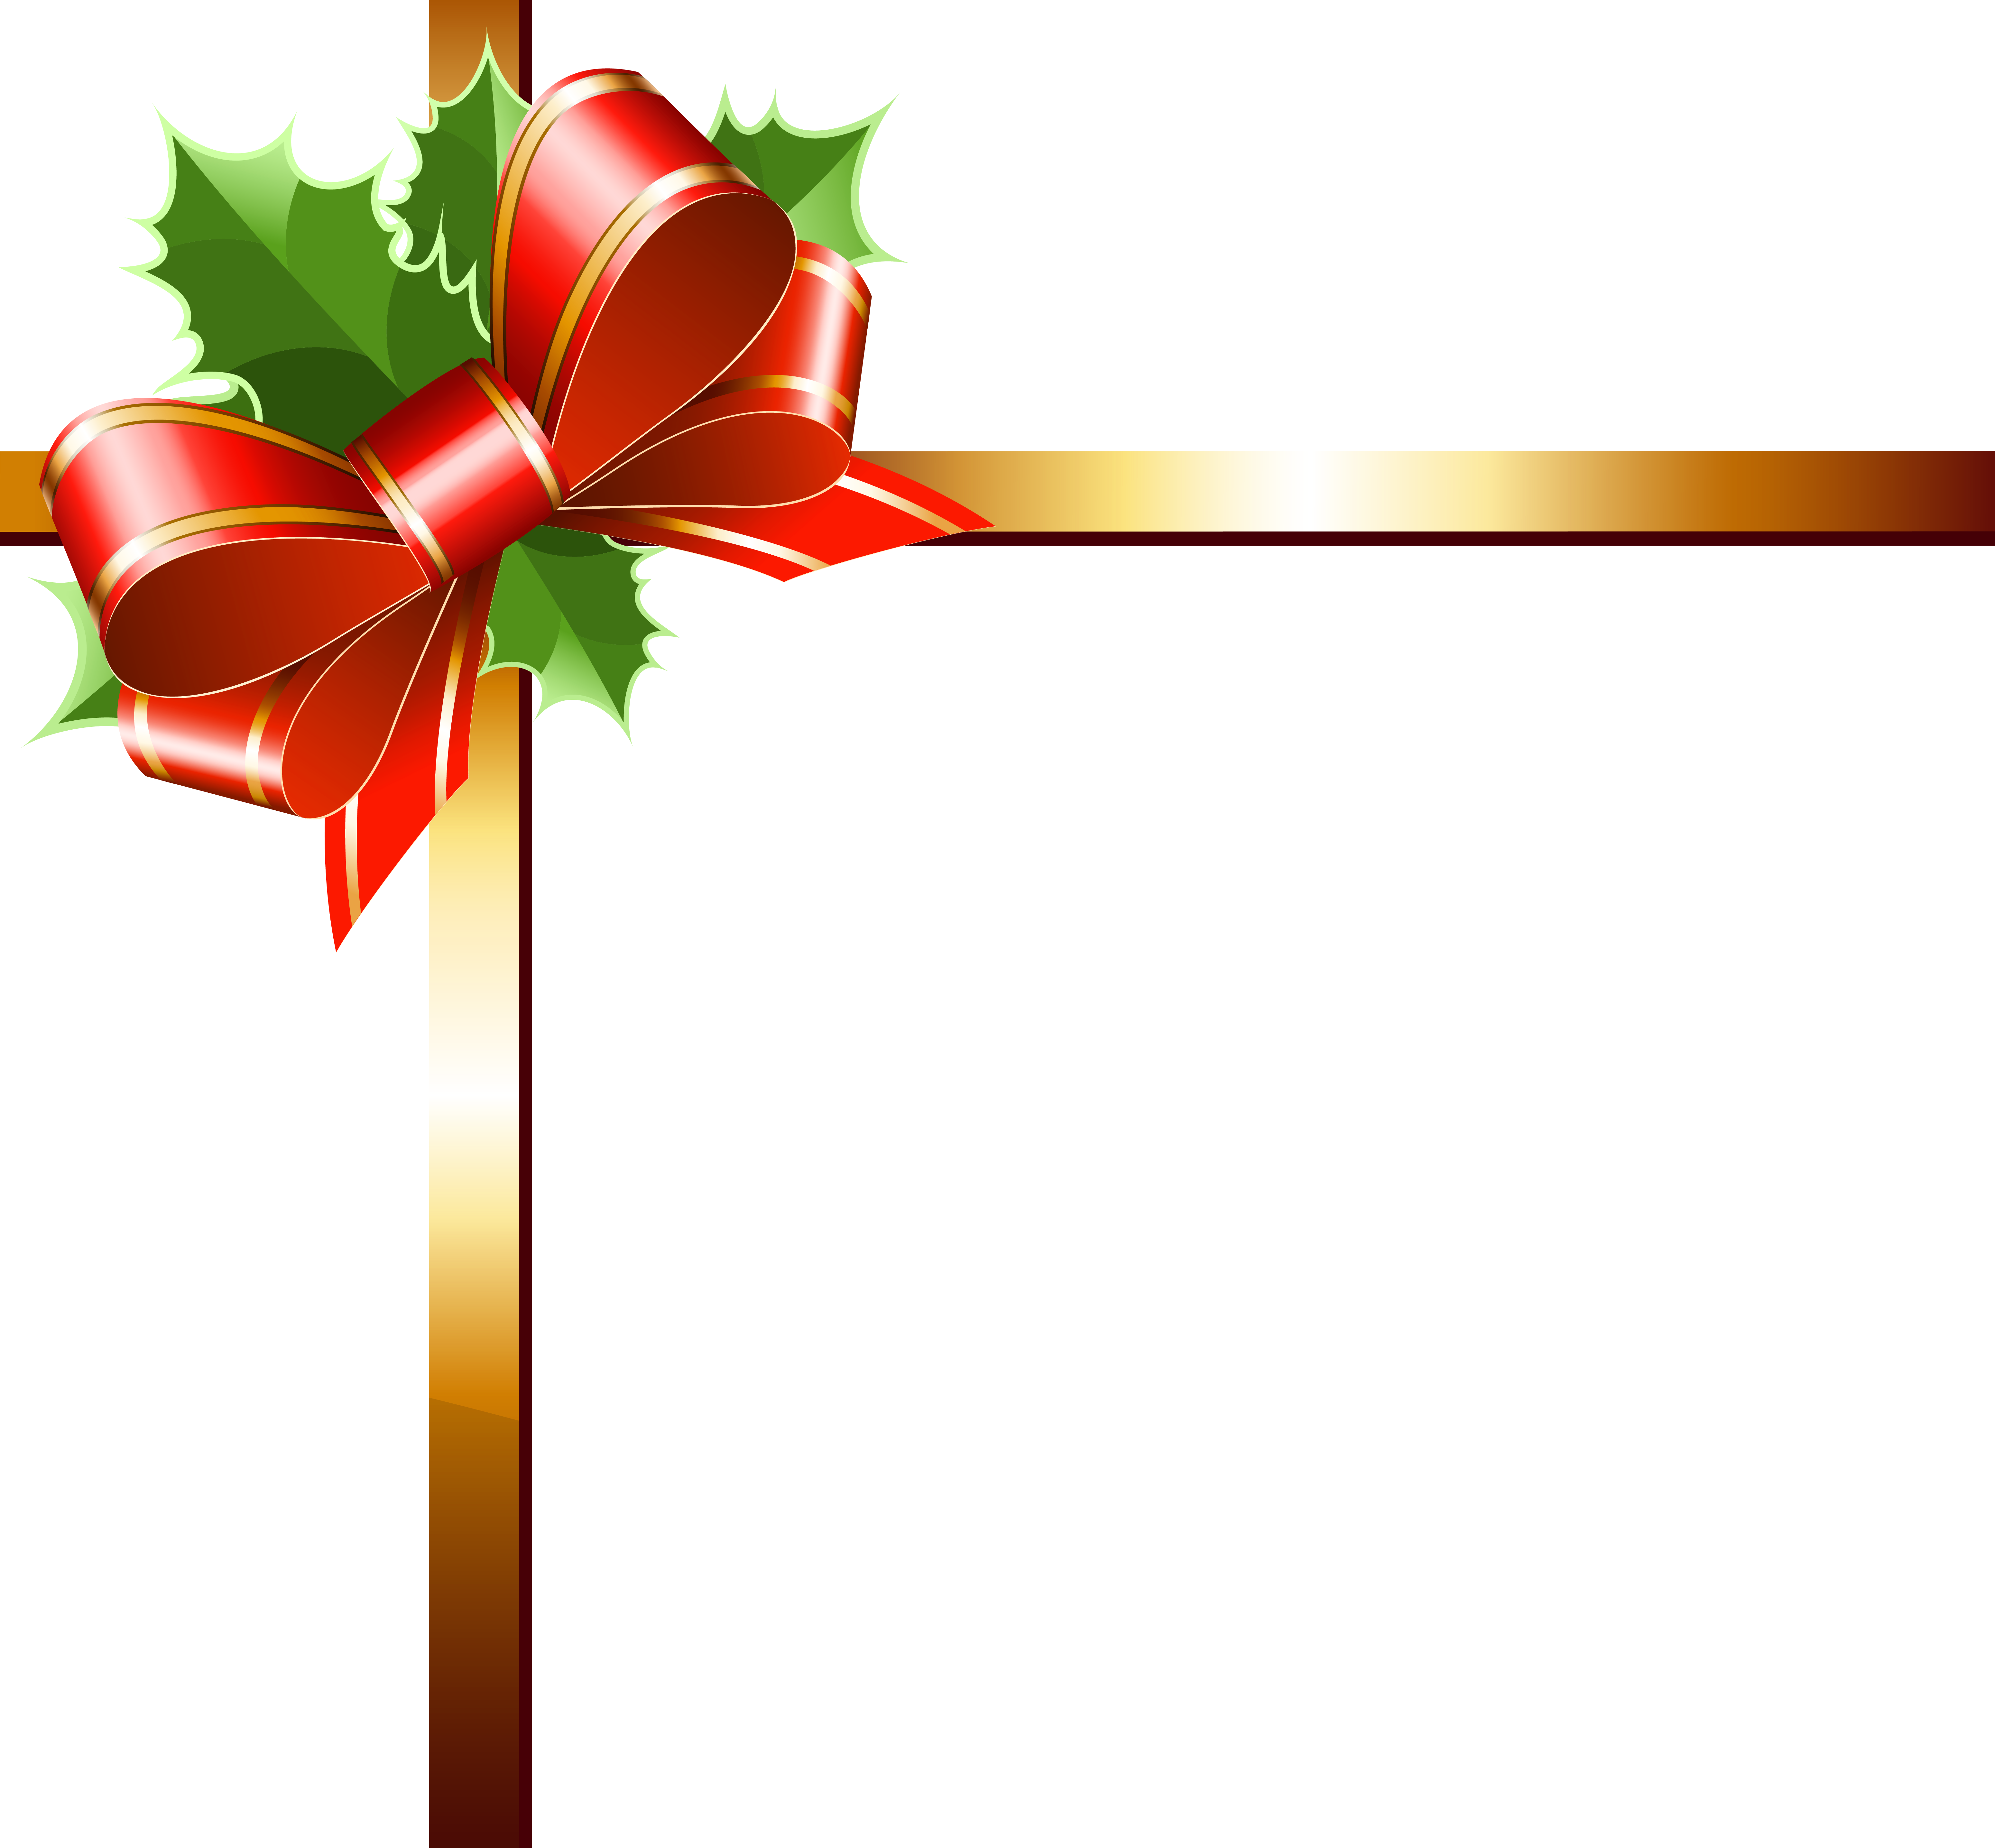 Christmas ribbons clipart picture library download Free Christmas Ribbons Cliparts, Download Free Clip Art, Free Clip ... picture library download